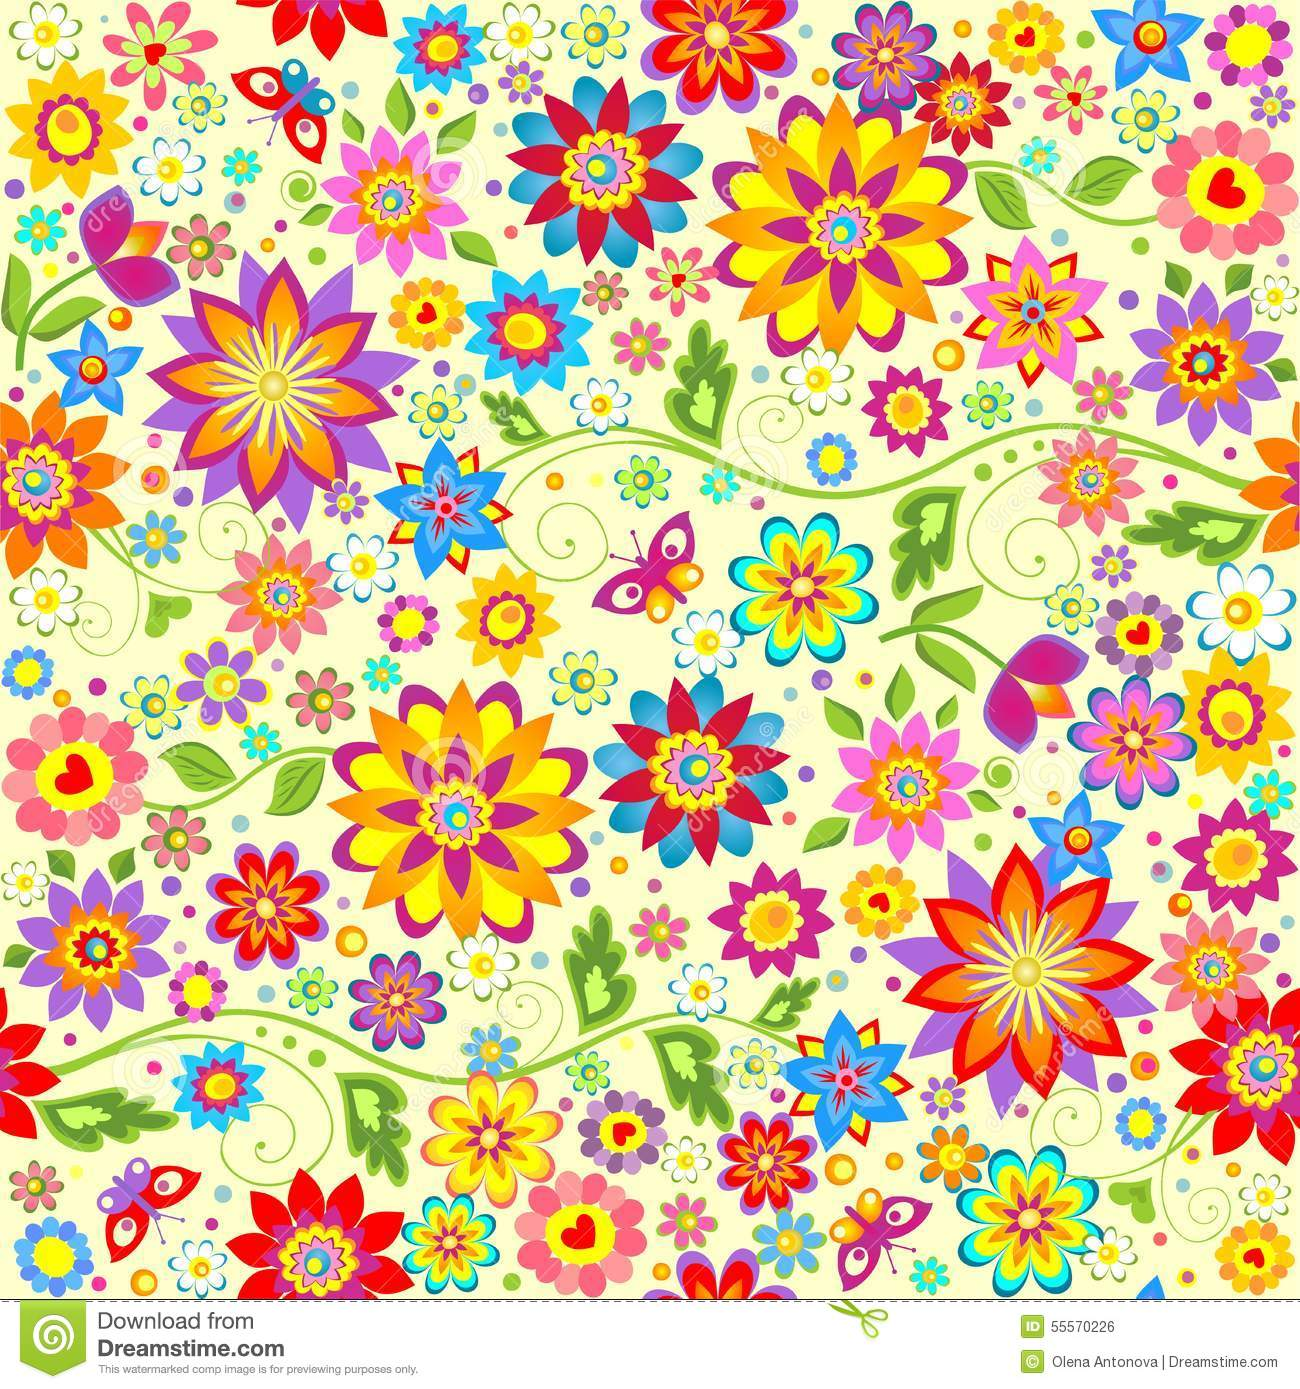 Floral colorful wallpaper stock vector. Illustration of easter ...